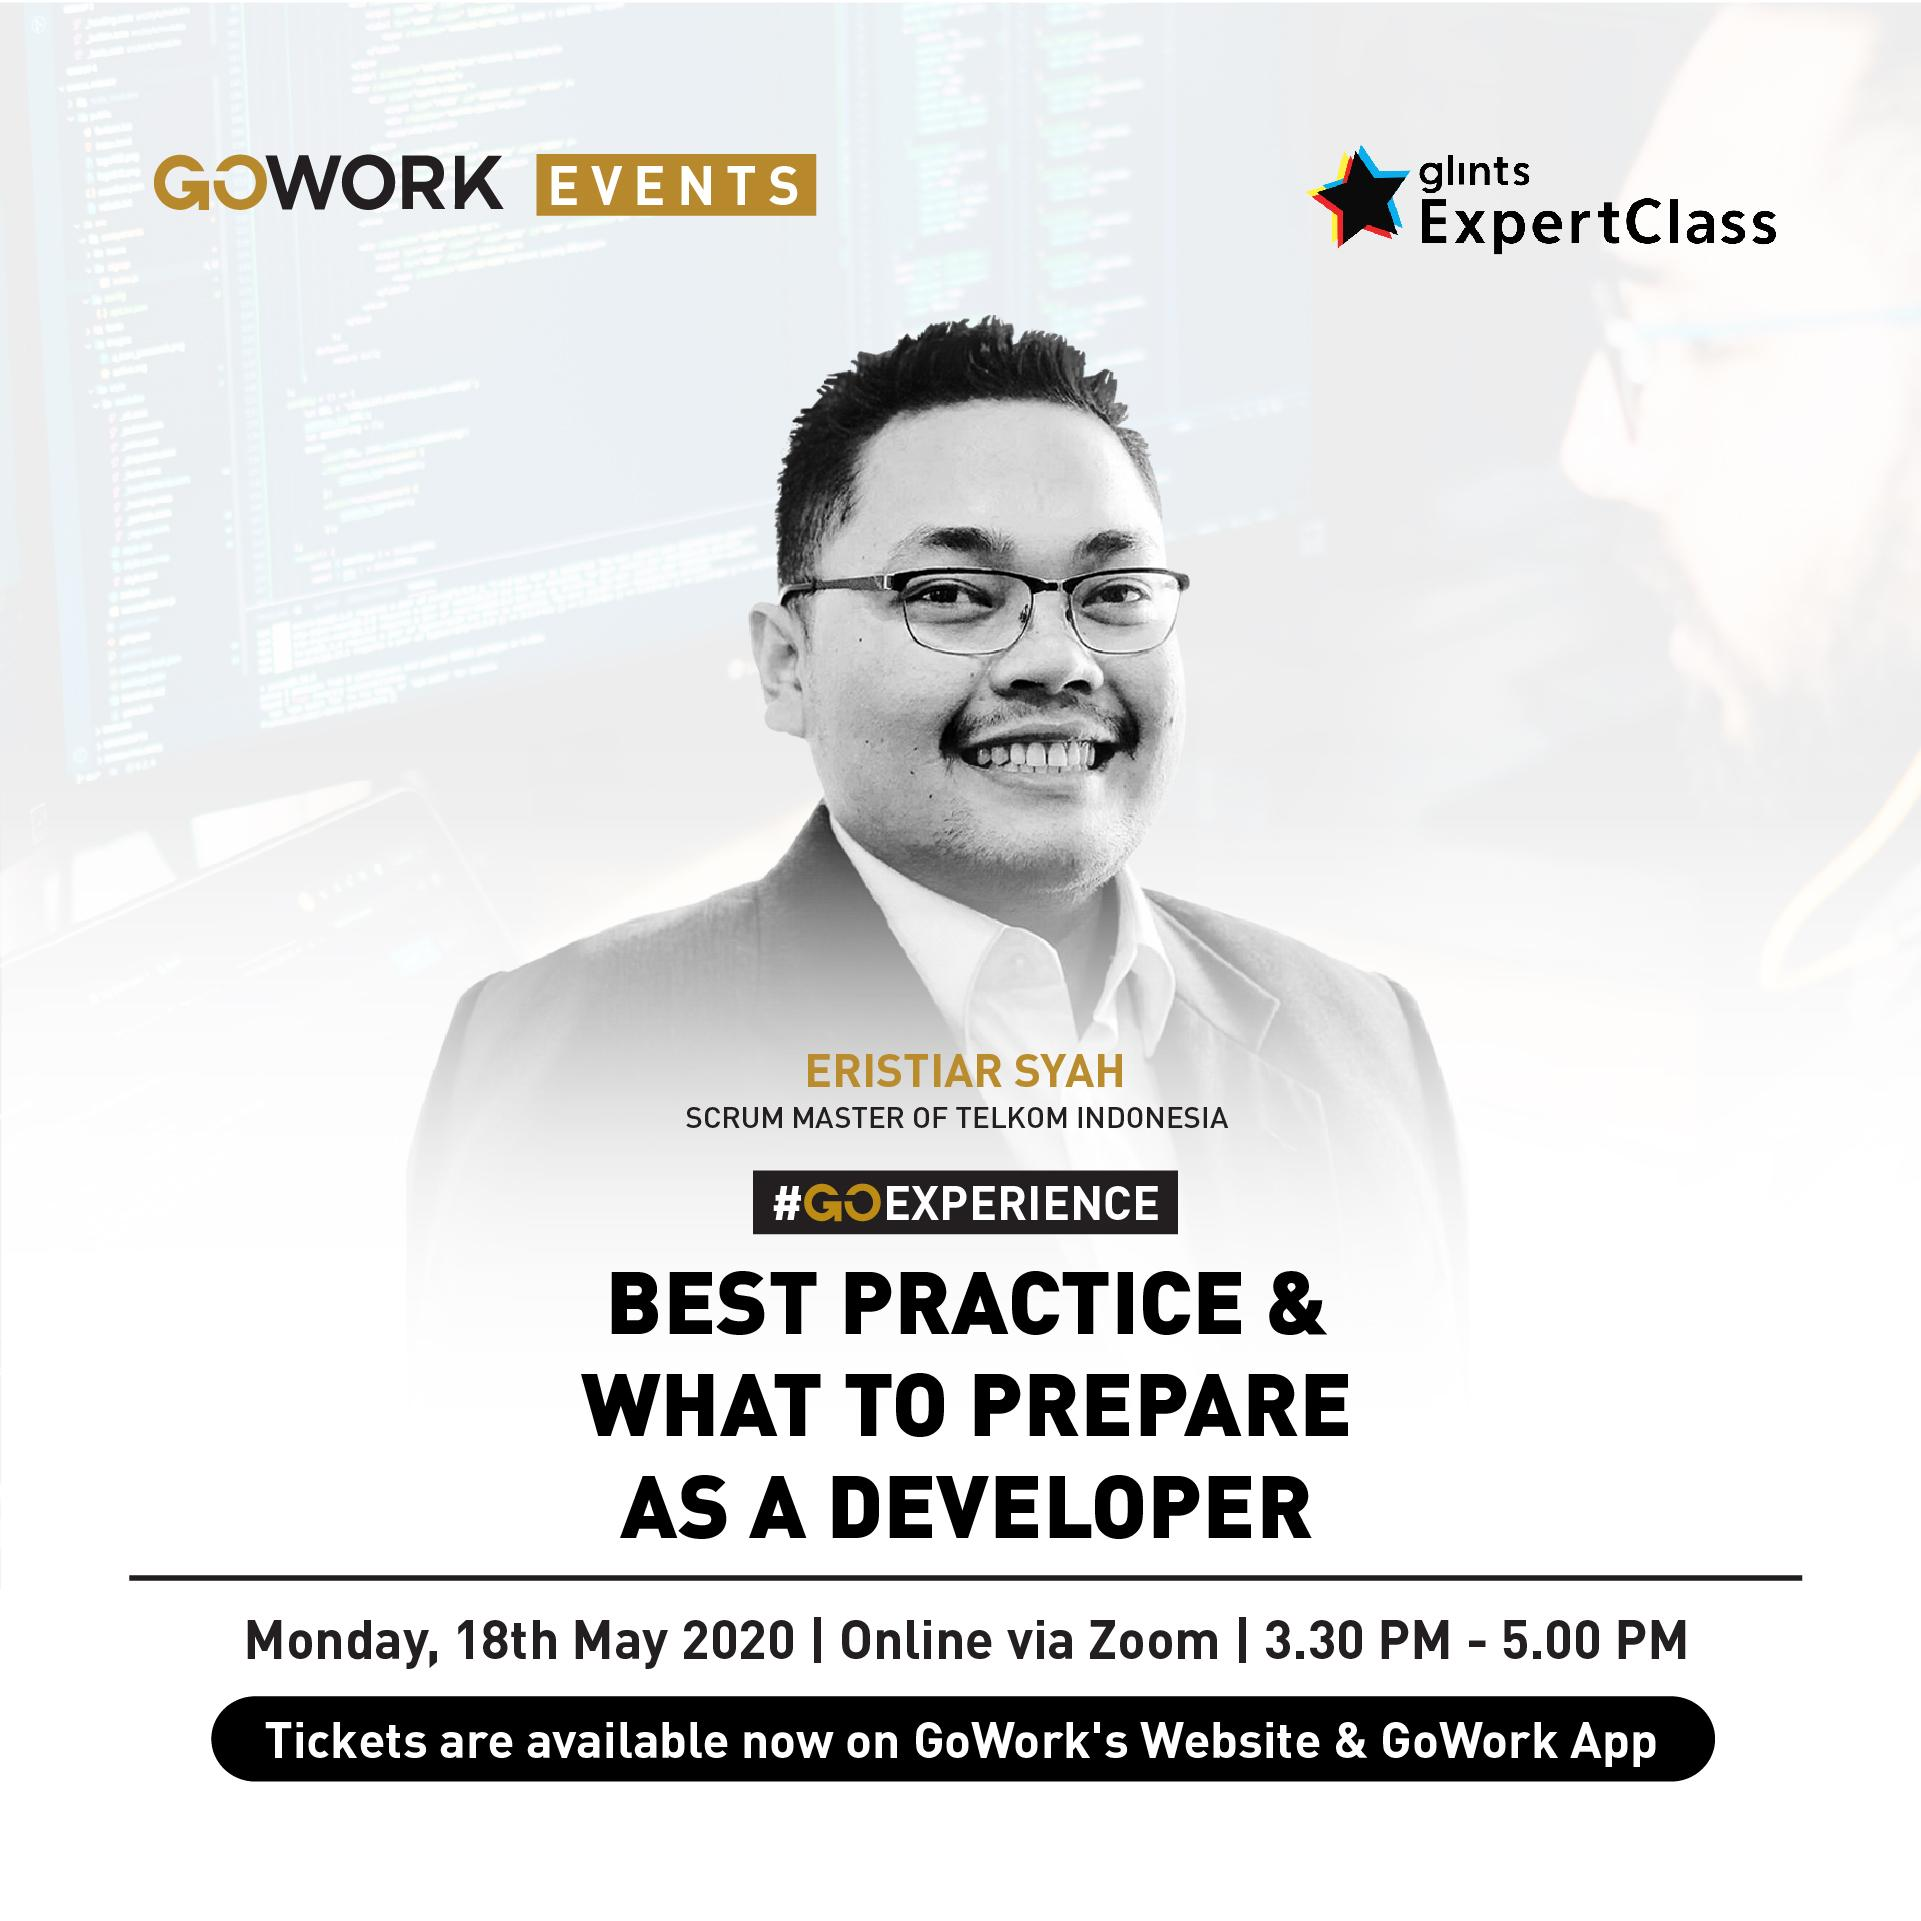 Best Practice and What to Prepare as a Developer